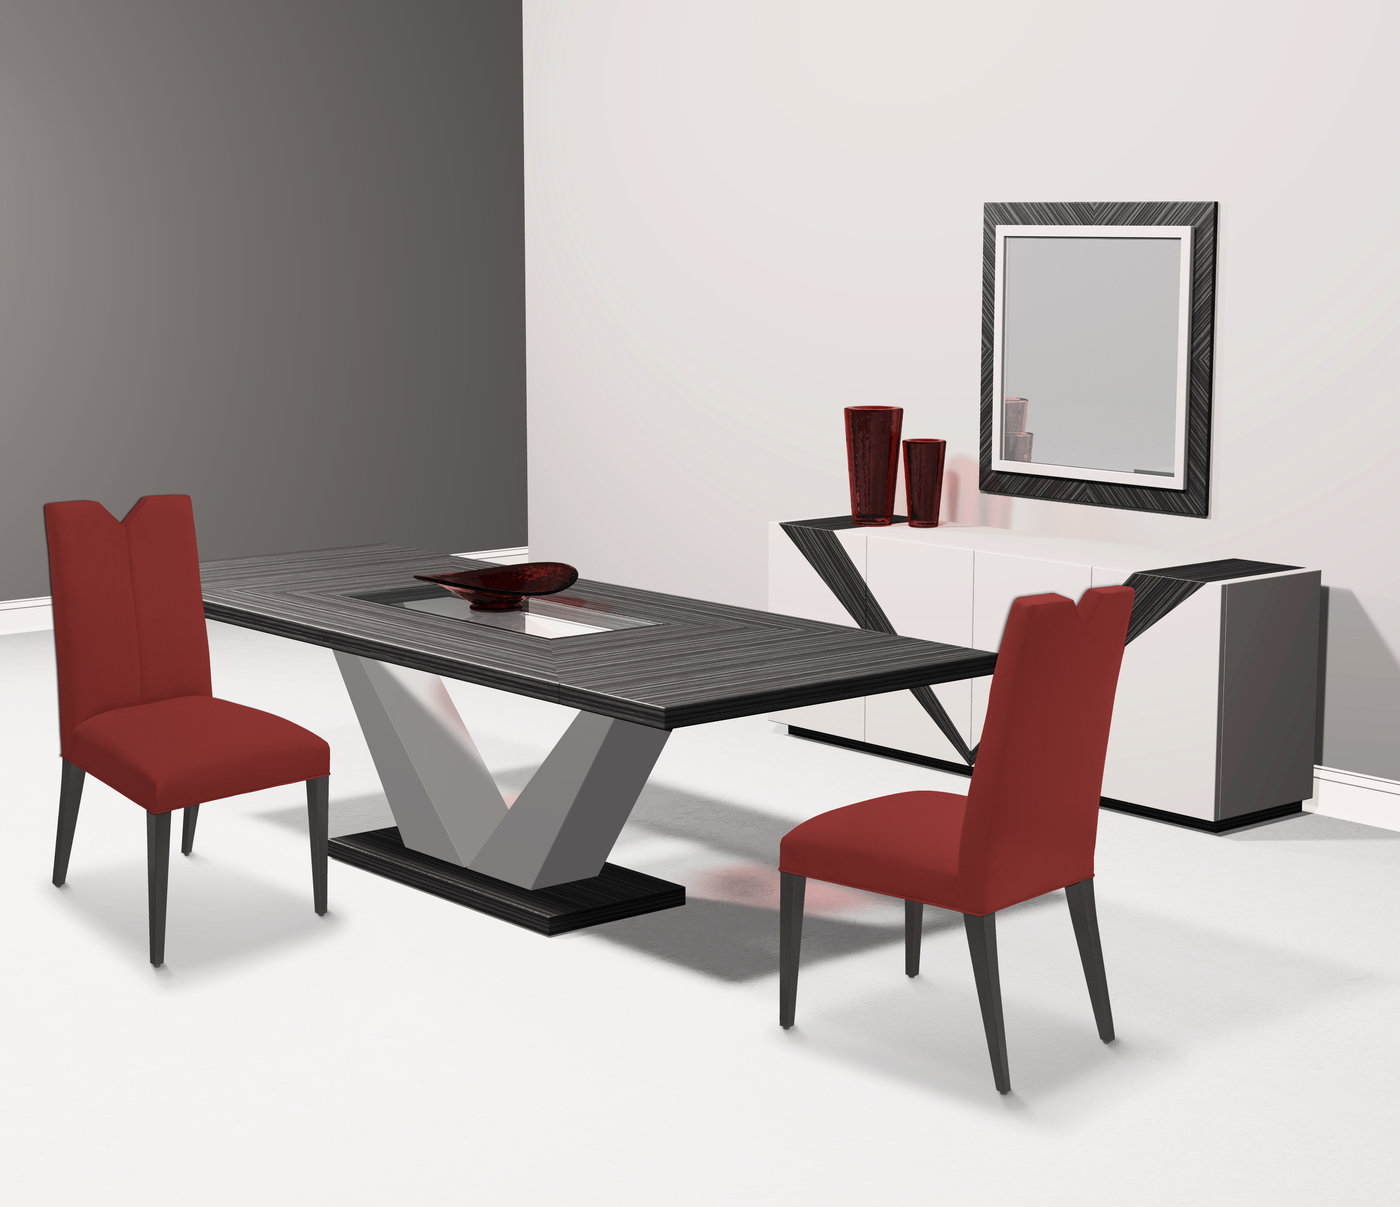 creative elegance furniture. The Valencia Dining Room Collection For Creative Elegance. Shown With Extension Table, Buffet, Mirror And Side Chairs. Made To Order In California. Elegance Furniture